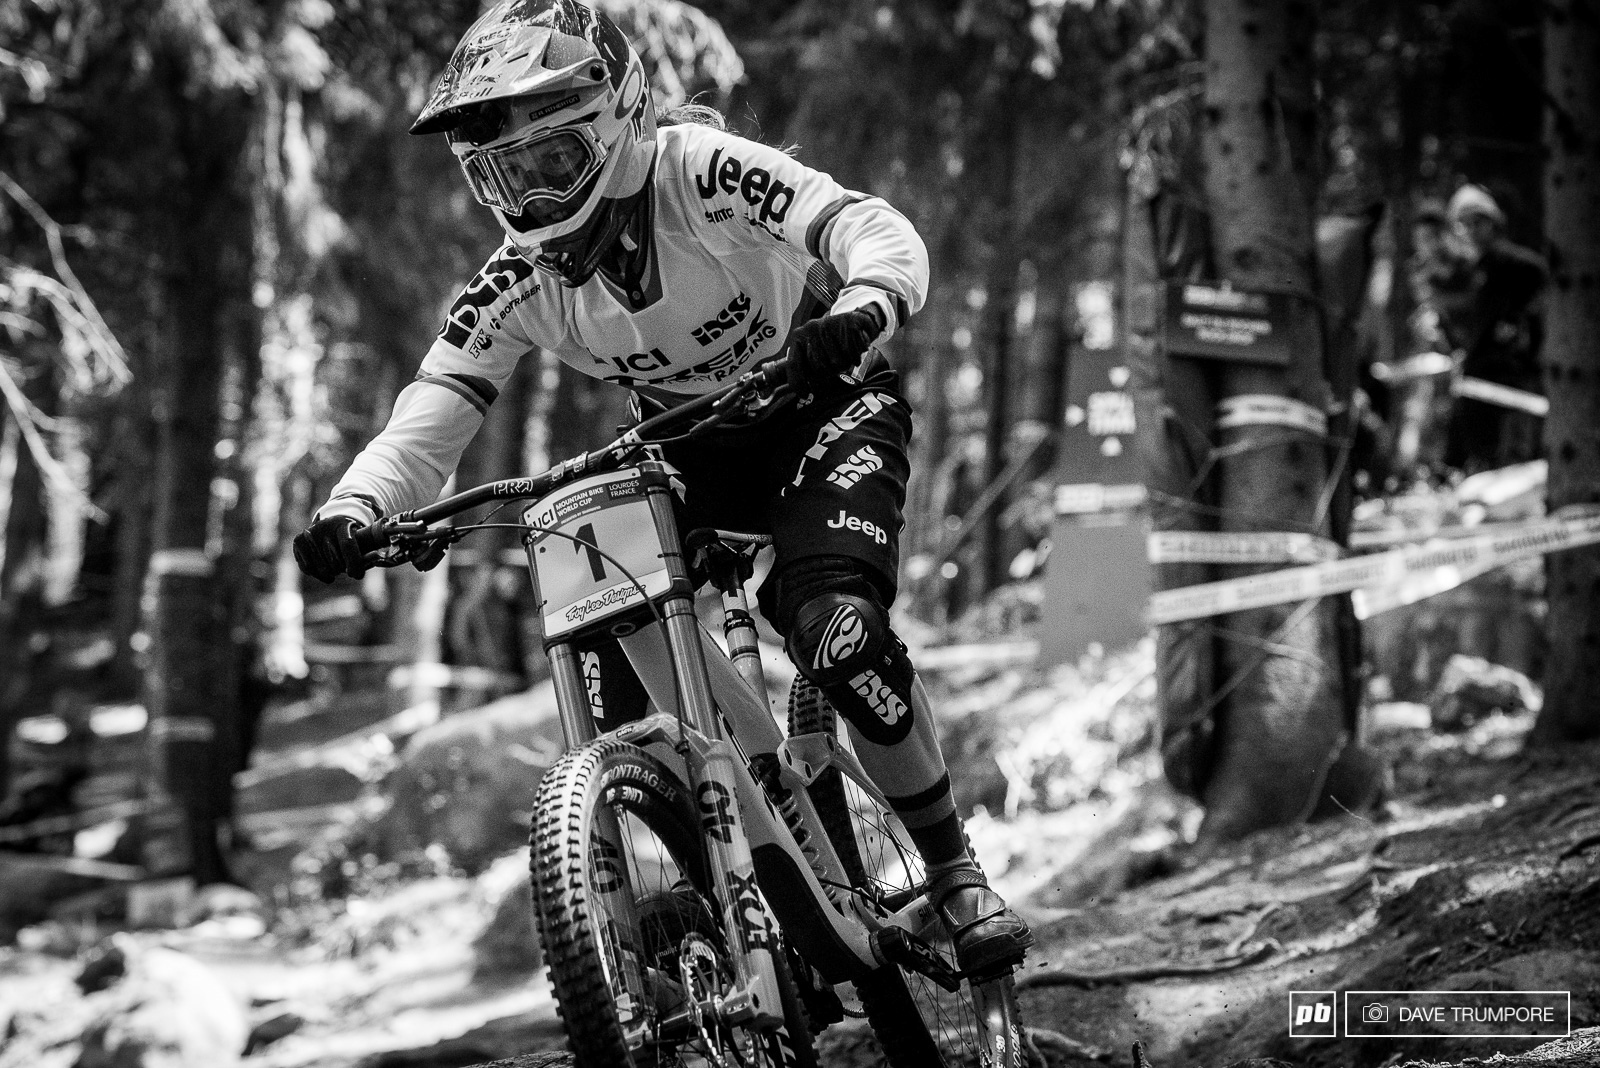 Chasing for the win is not something Rachel Atherton is used to doing but that s exactly what she ll have to do if she wants to be on top tomorrow.